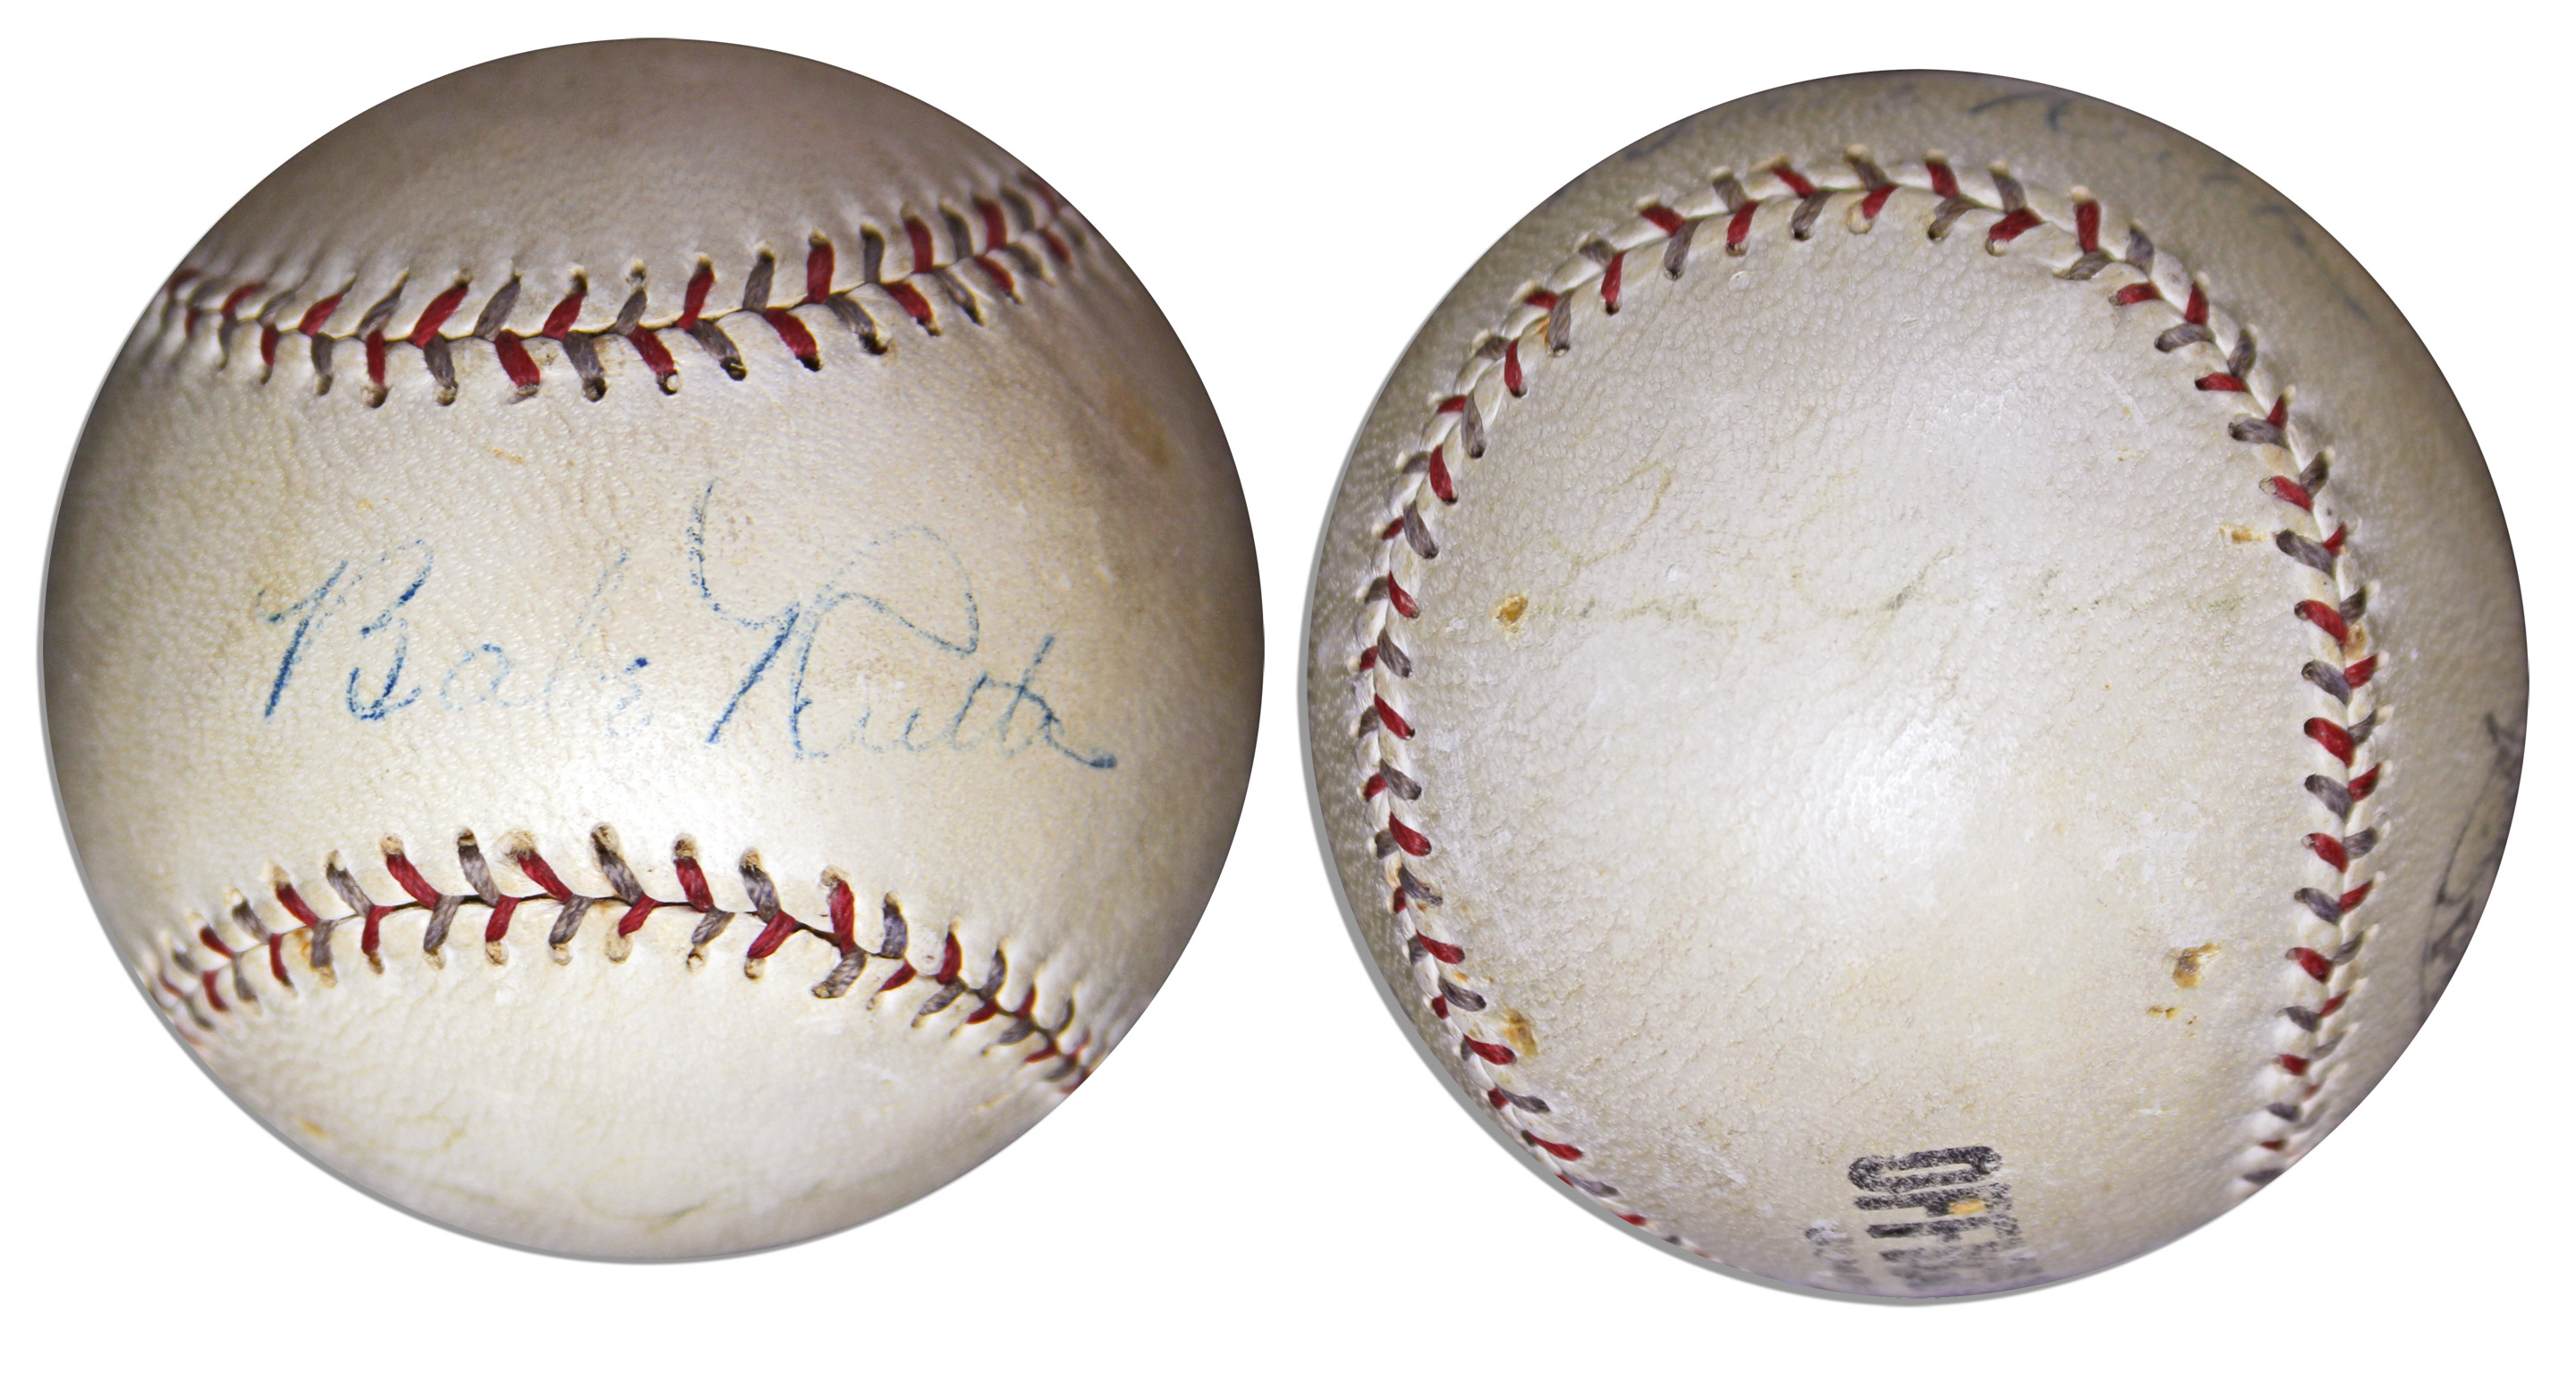 44d4c913b FREE APPRAISAL of your Babe Ruth Autograph by Nate D. Sanders